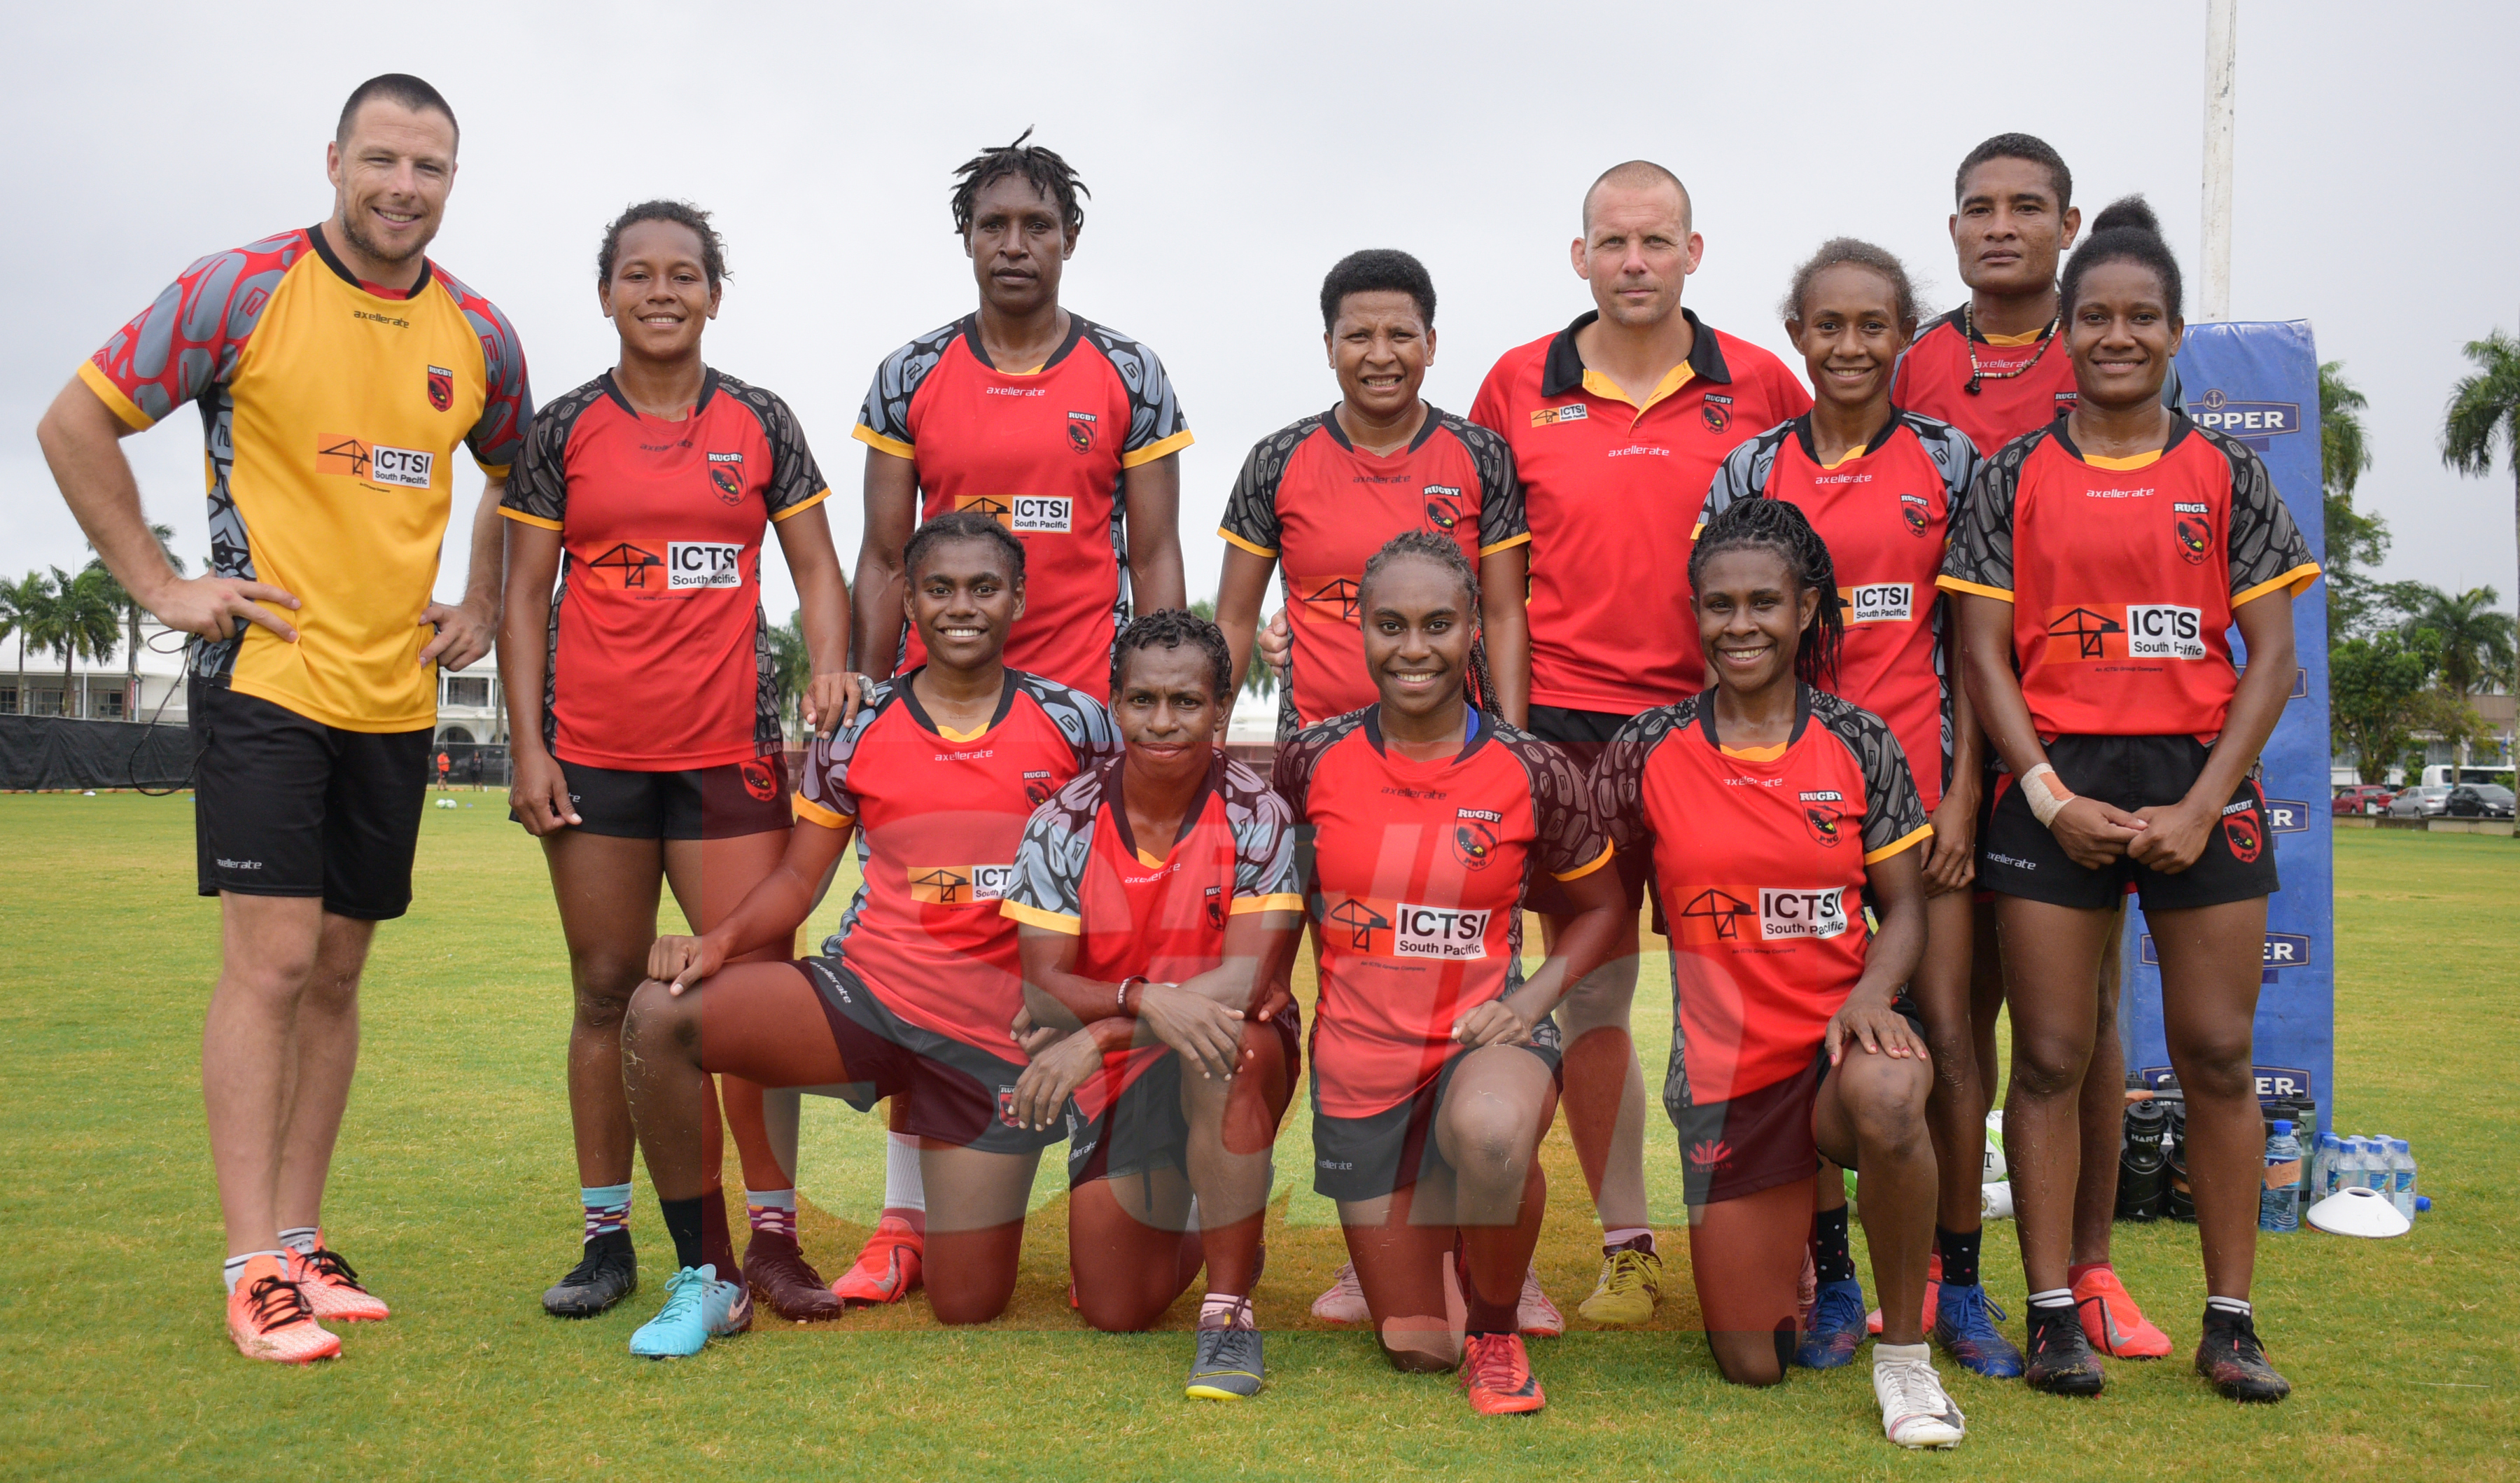 PNG Womens team with their coach Paul Tietjens (right) after training at Albert Park for Oceania Sevens Championship on November 5, 2019. Photo: Ronald Kumar.